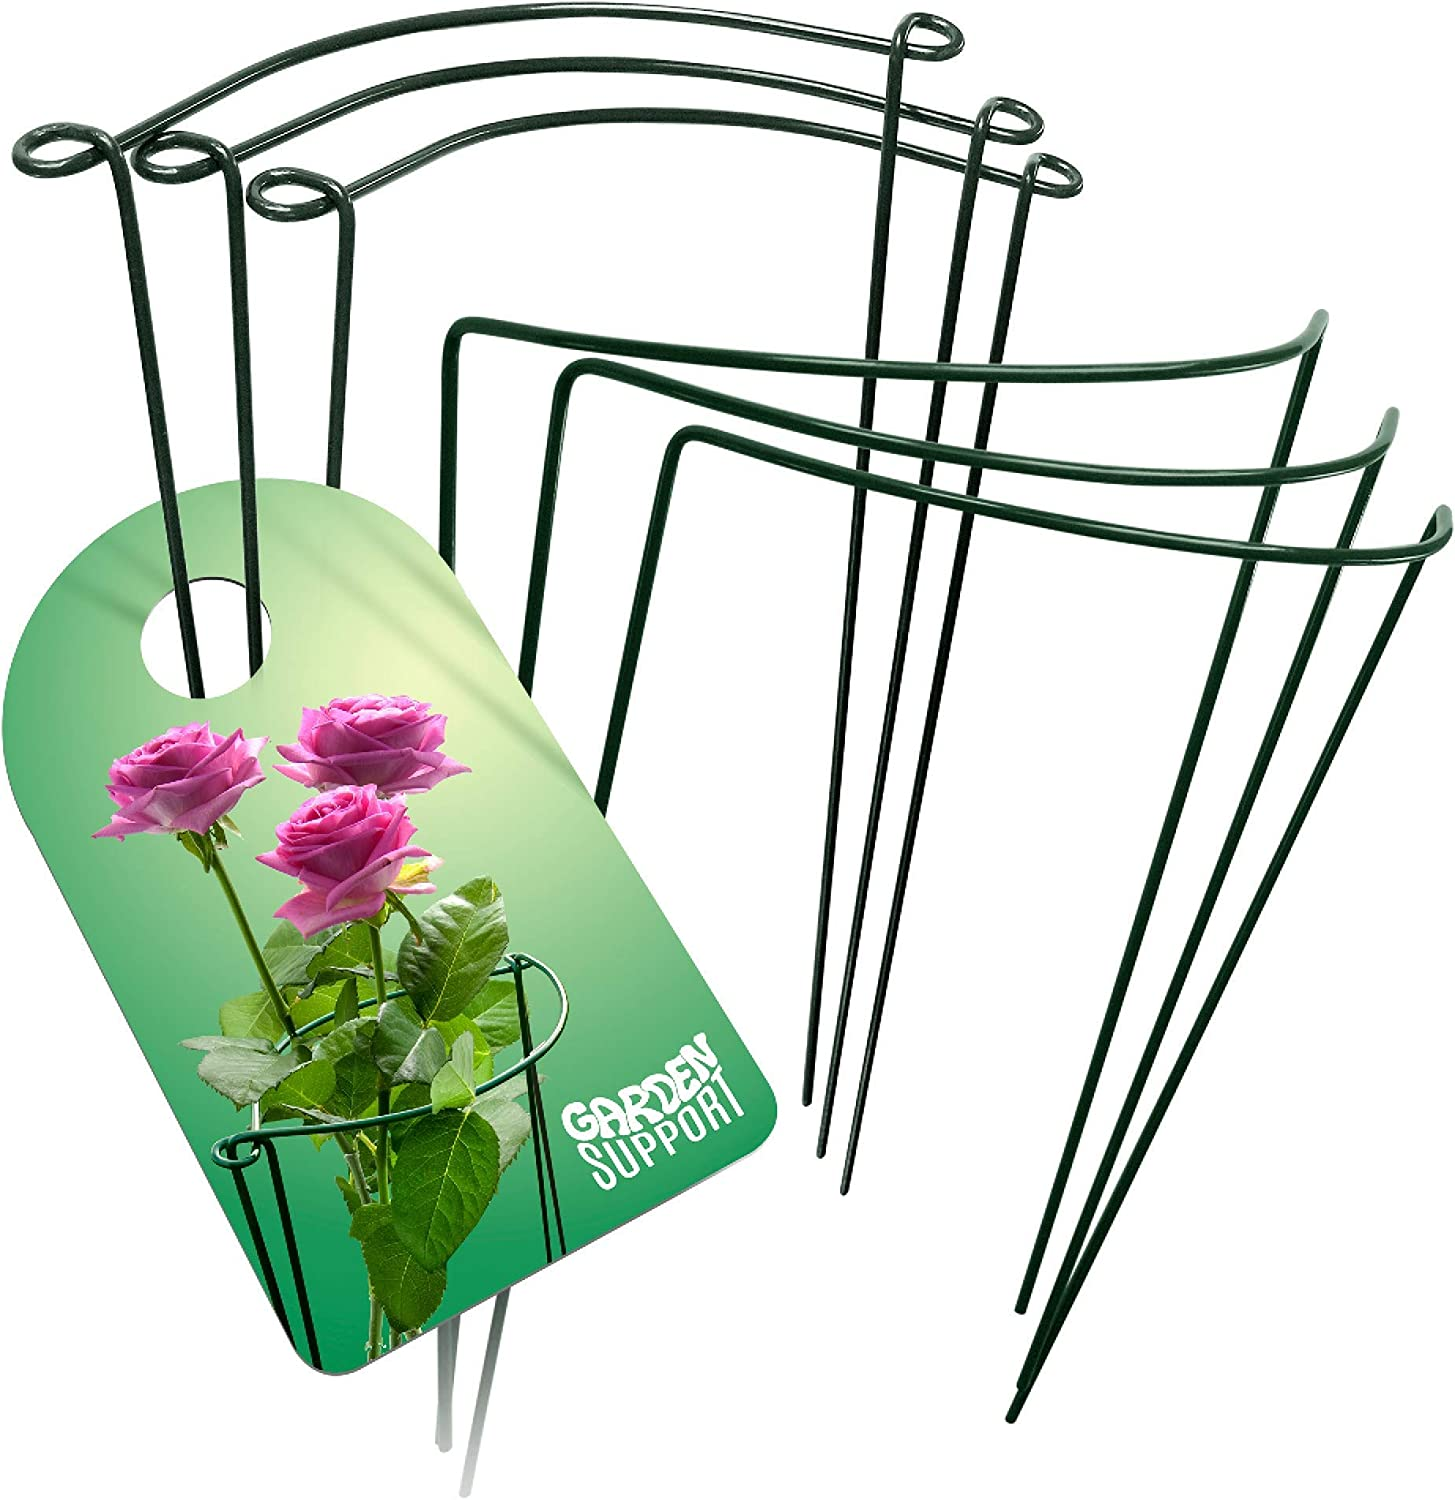 Strong & Sturdy Plant Support Cages - 6pcs 11.8'' x 15.7'' Metal Rings for Peony Rose & Hydrangea | Interconnectable Wire Half Hoops | Perfect for Indoor Potted or Garden Flowers & Vine Grow Holders